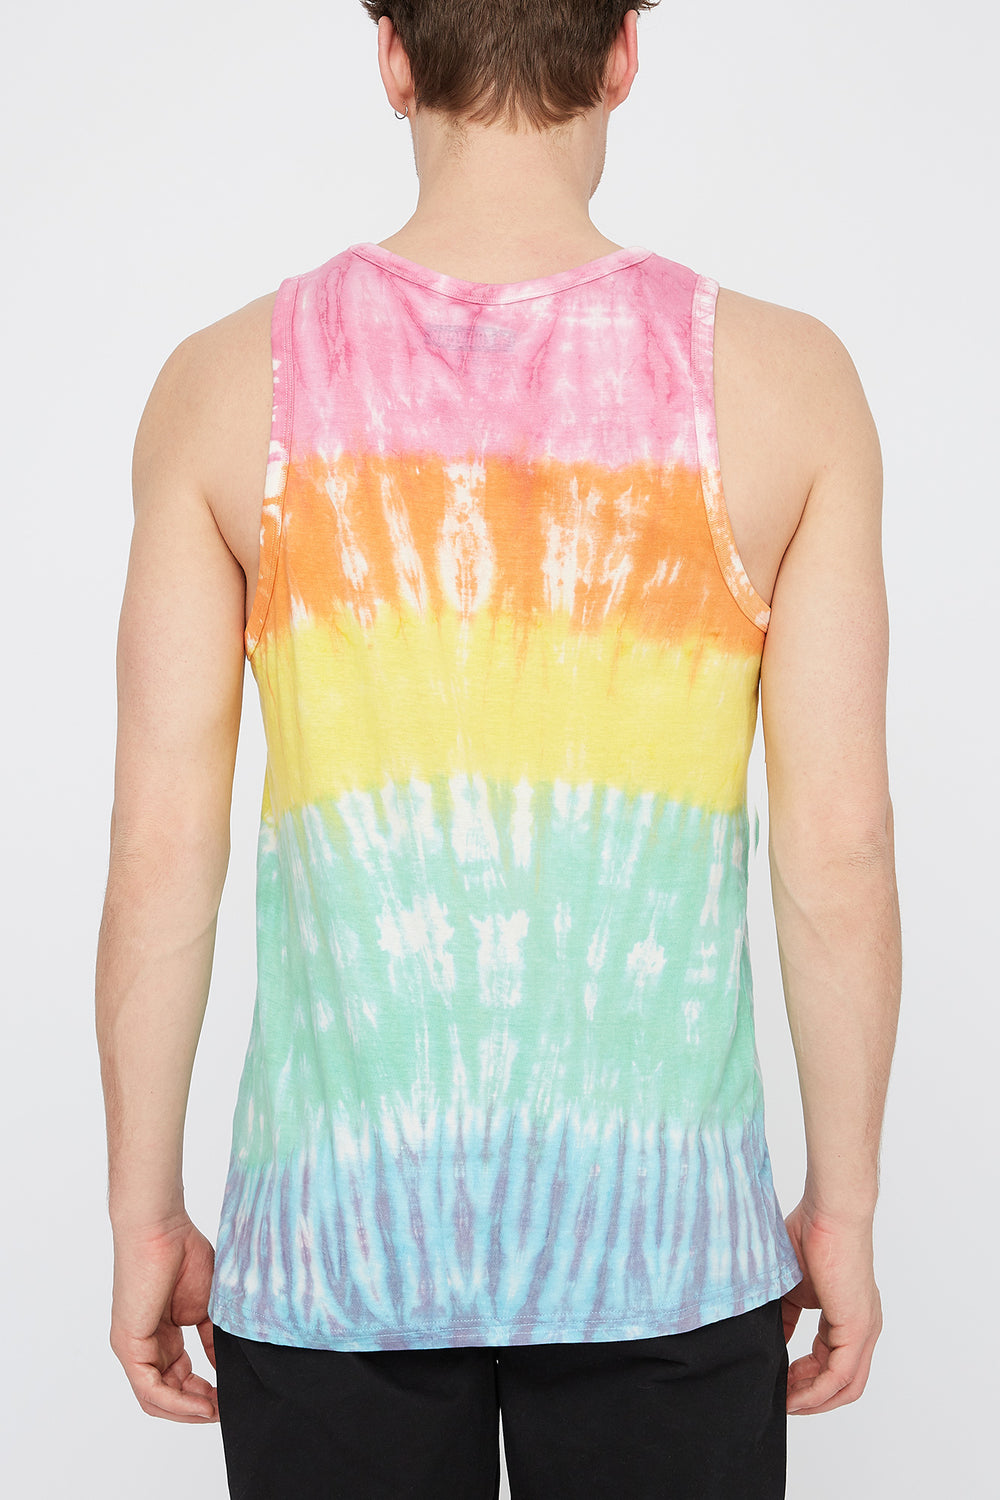 Zoo York Mens Tie Dye Tank Top Multi